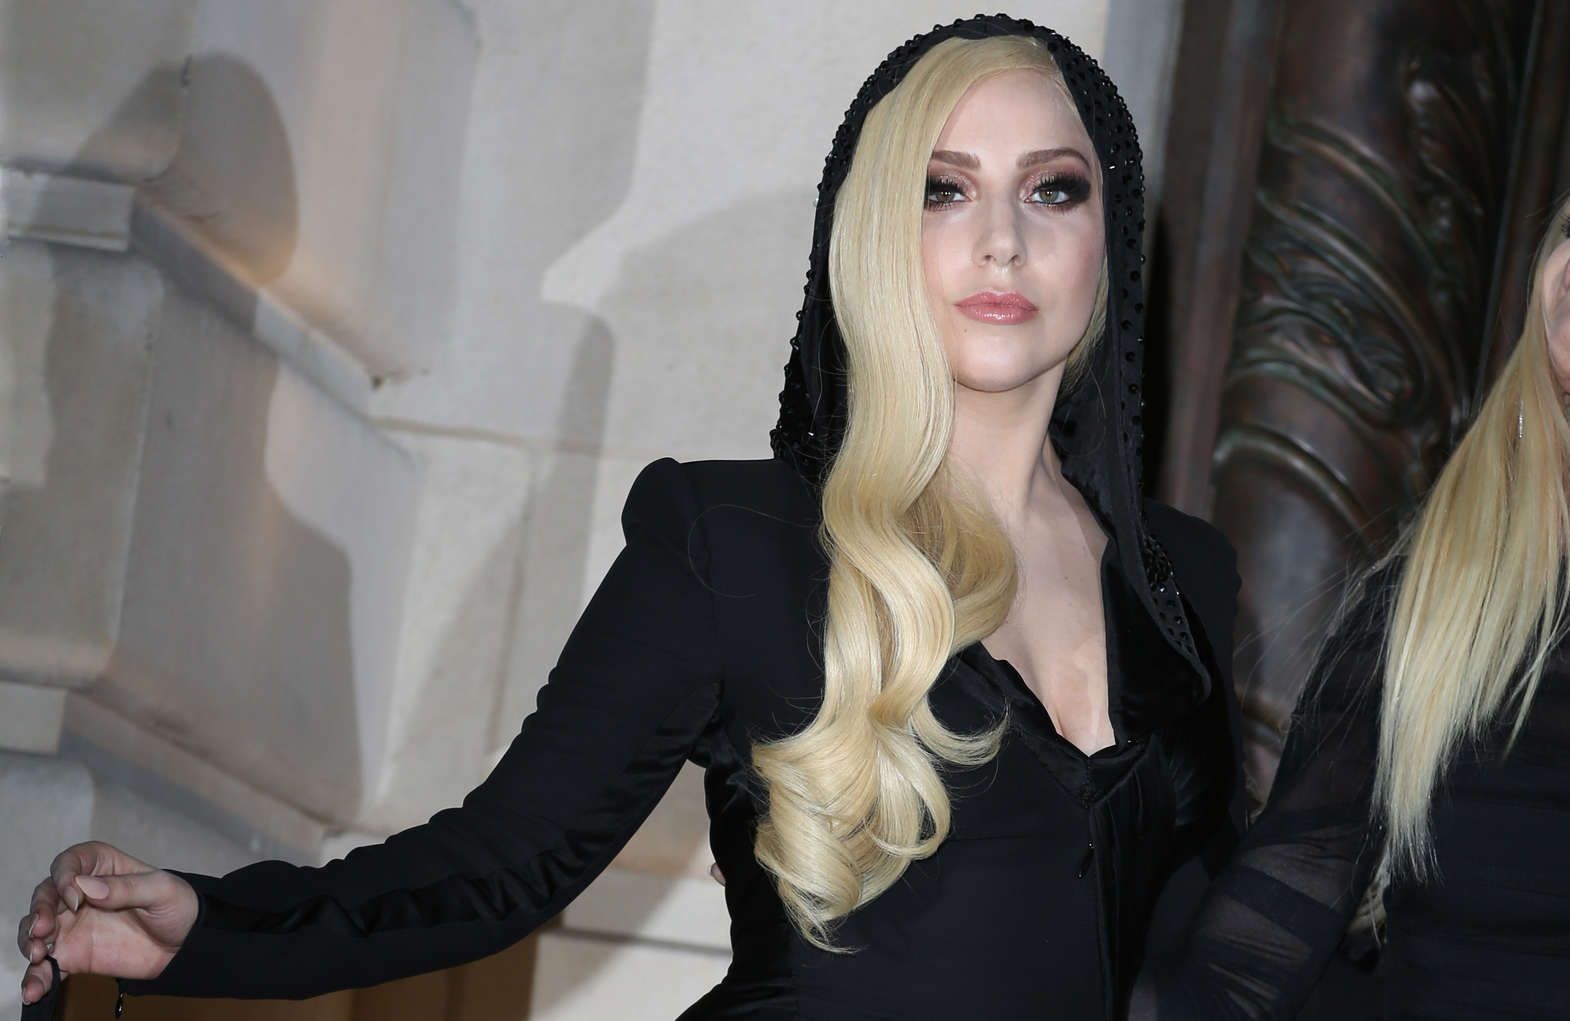 Back to post Lady Gaga – Arrives at Versace fashion show in Paris